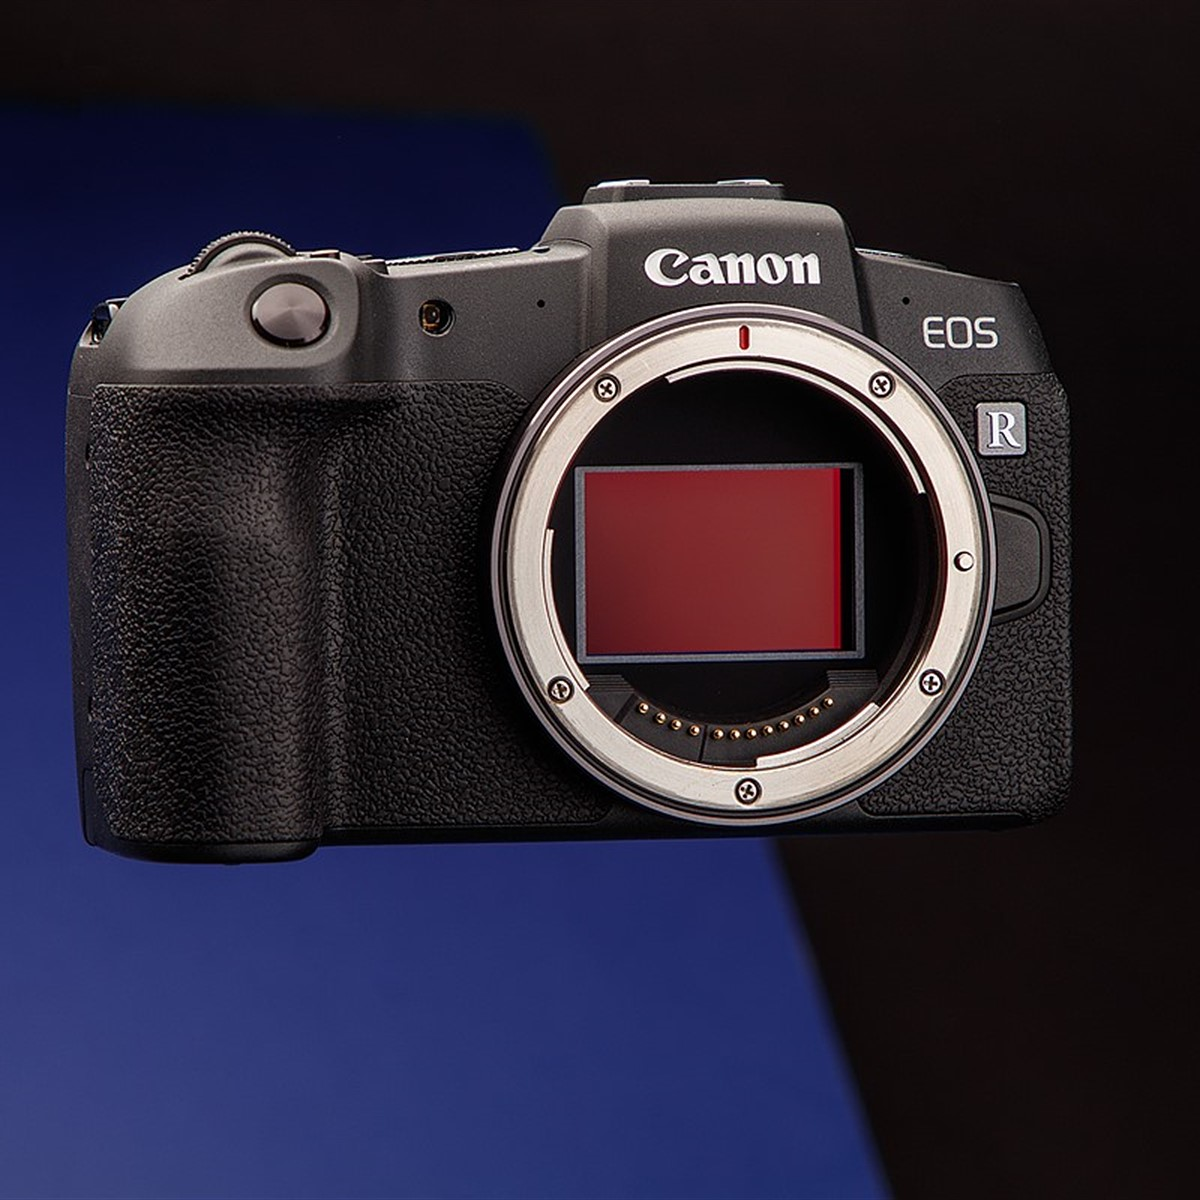 canon eos rp firmware update 1.3.0